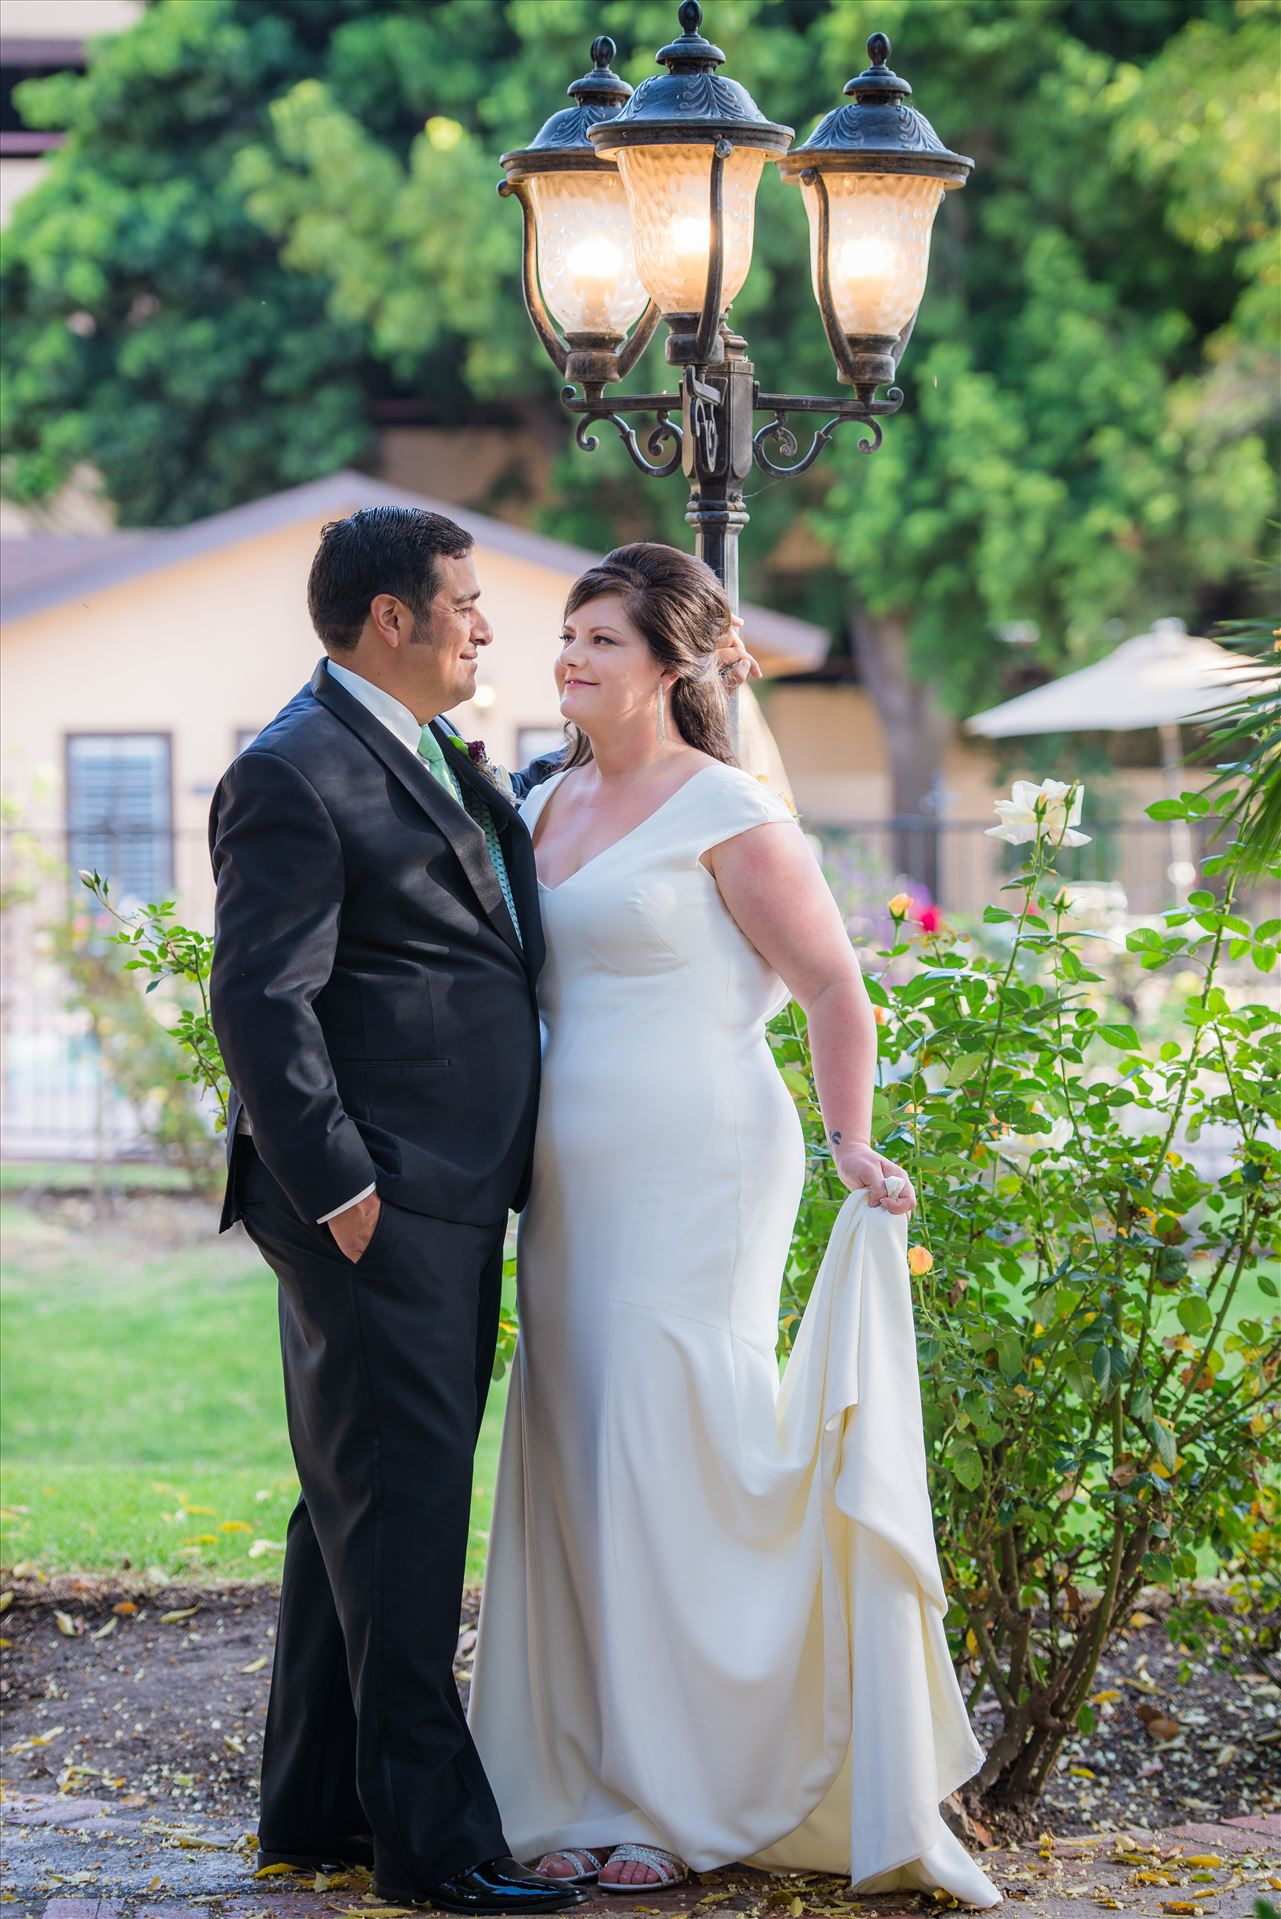 Mary and Alejandro 21 - Wedding photography at the Historic Santa Maria Inn in Santa Maria, California by Mirror's Edge Photography. Bride and Groom at the lamppost near back lawn. by Sarah Williams